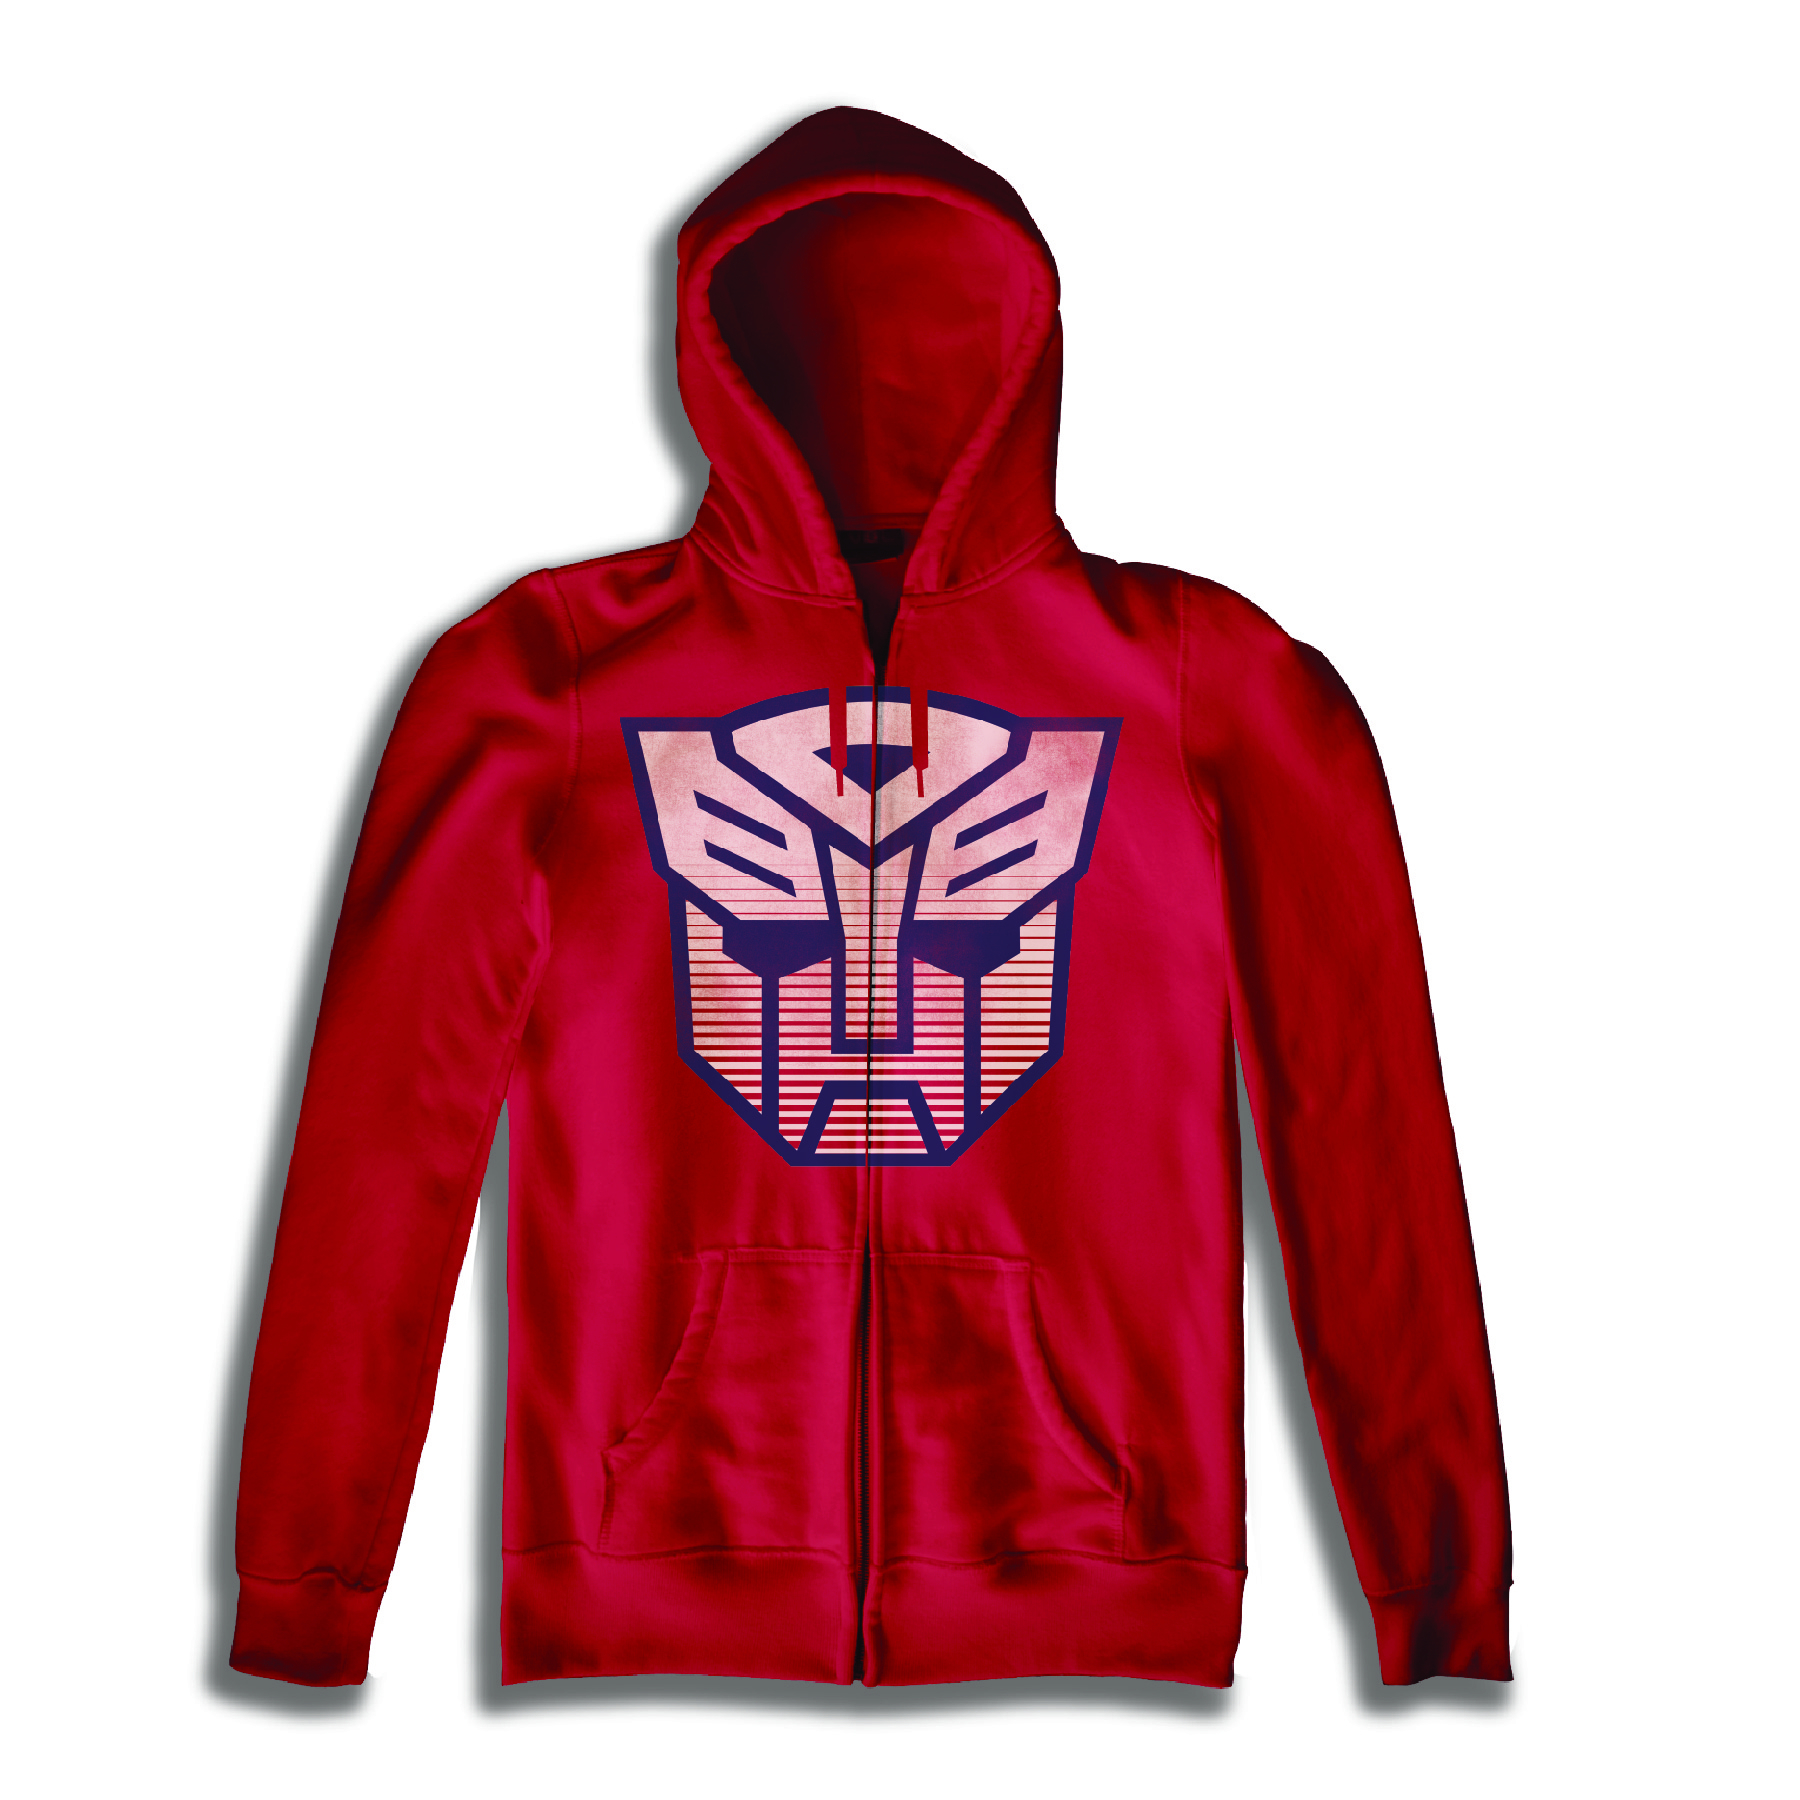 TRANSFORMERS AUTOBOT SYMBOL RED HOODIE LG